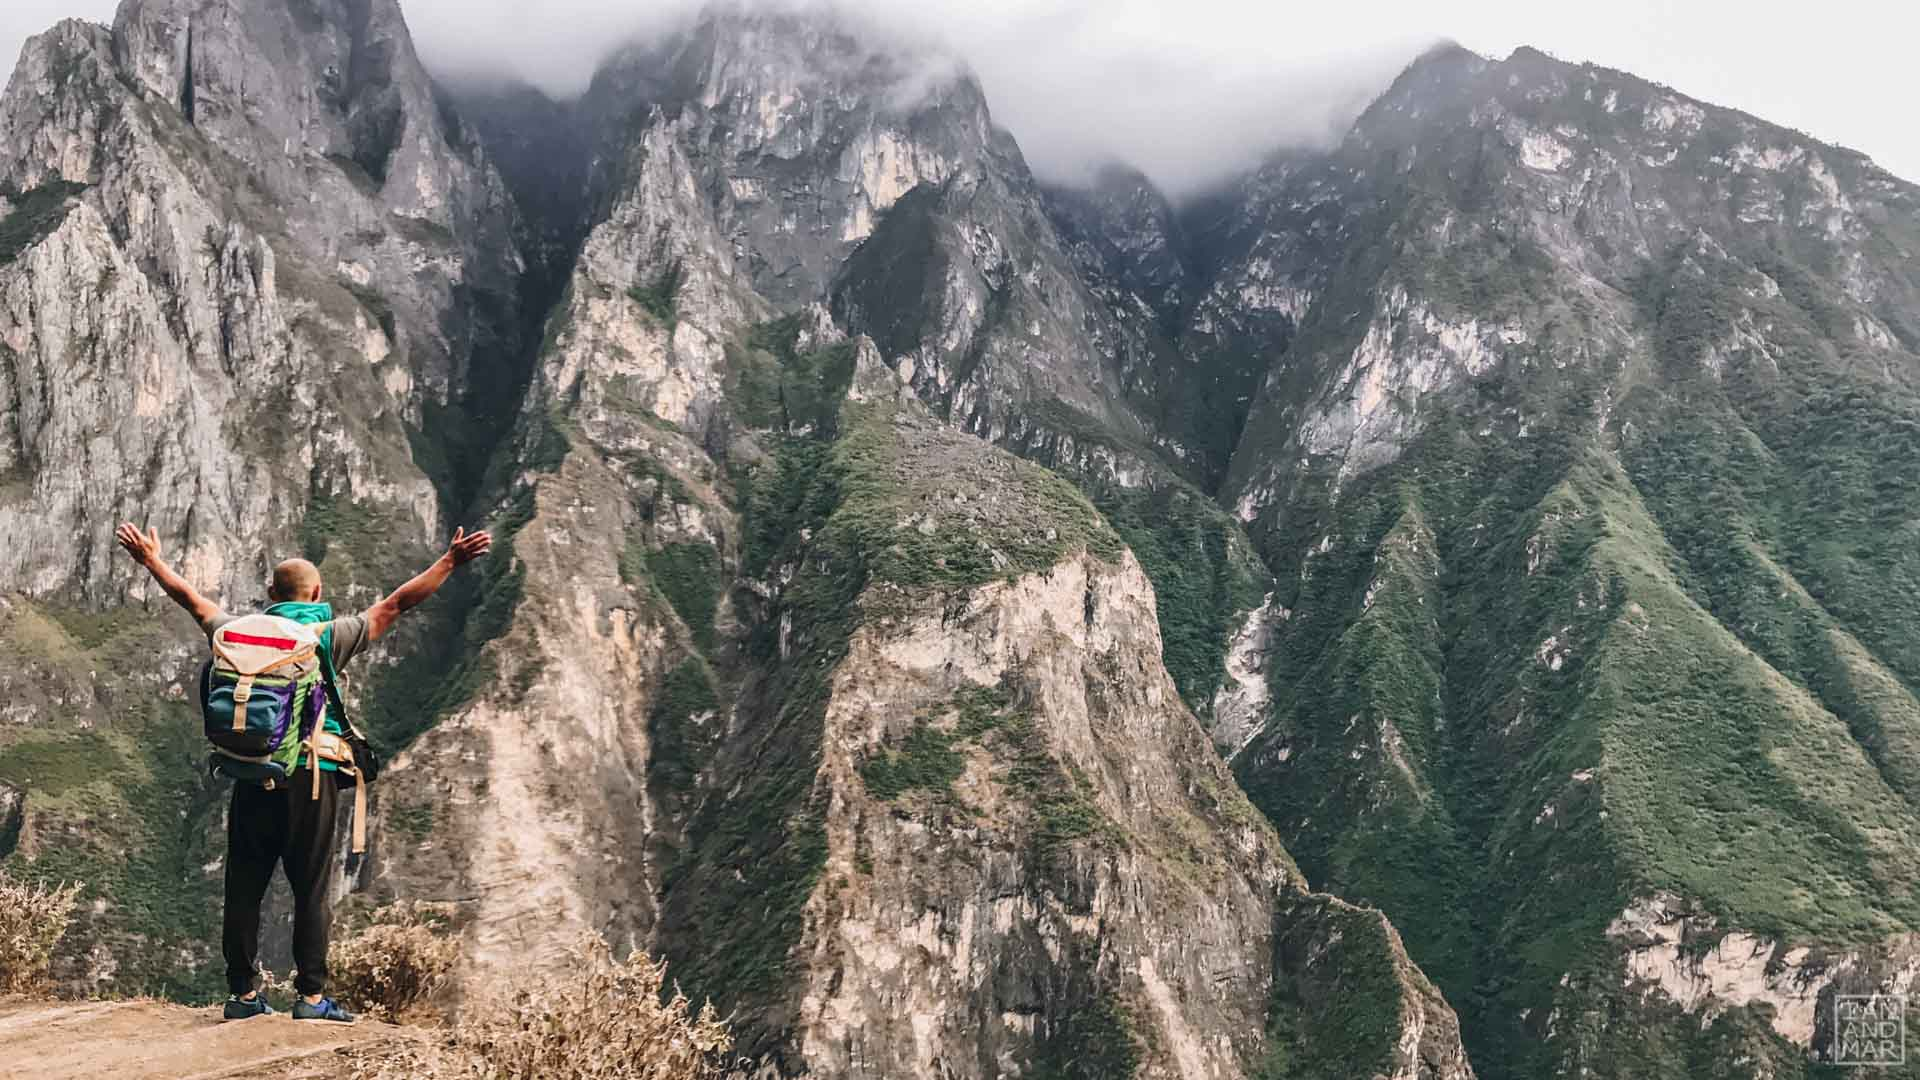 man with stretched arms in front of a mountain view